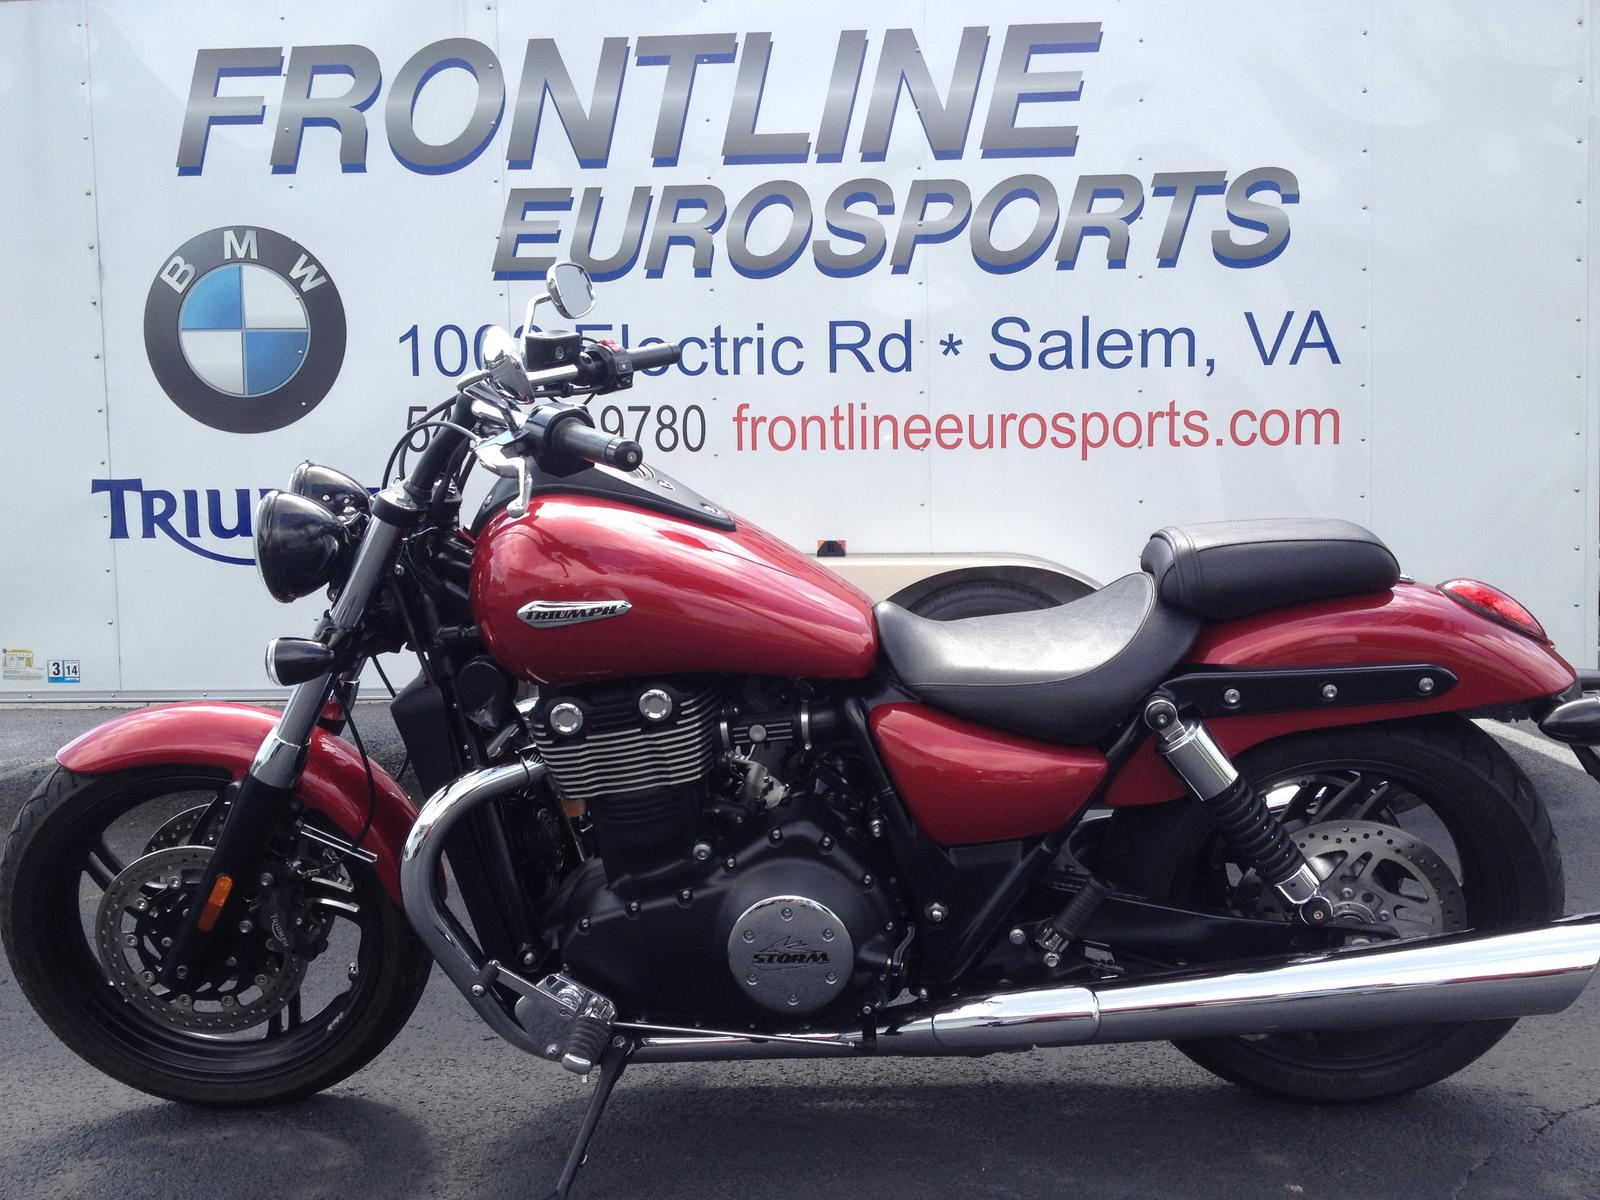 Page 213515, 2011 Triumph THUNDERBIRD STORM, New and Used Triumph ...